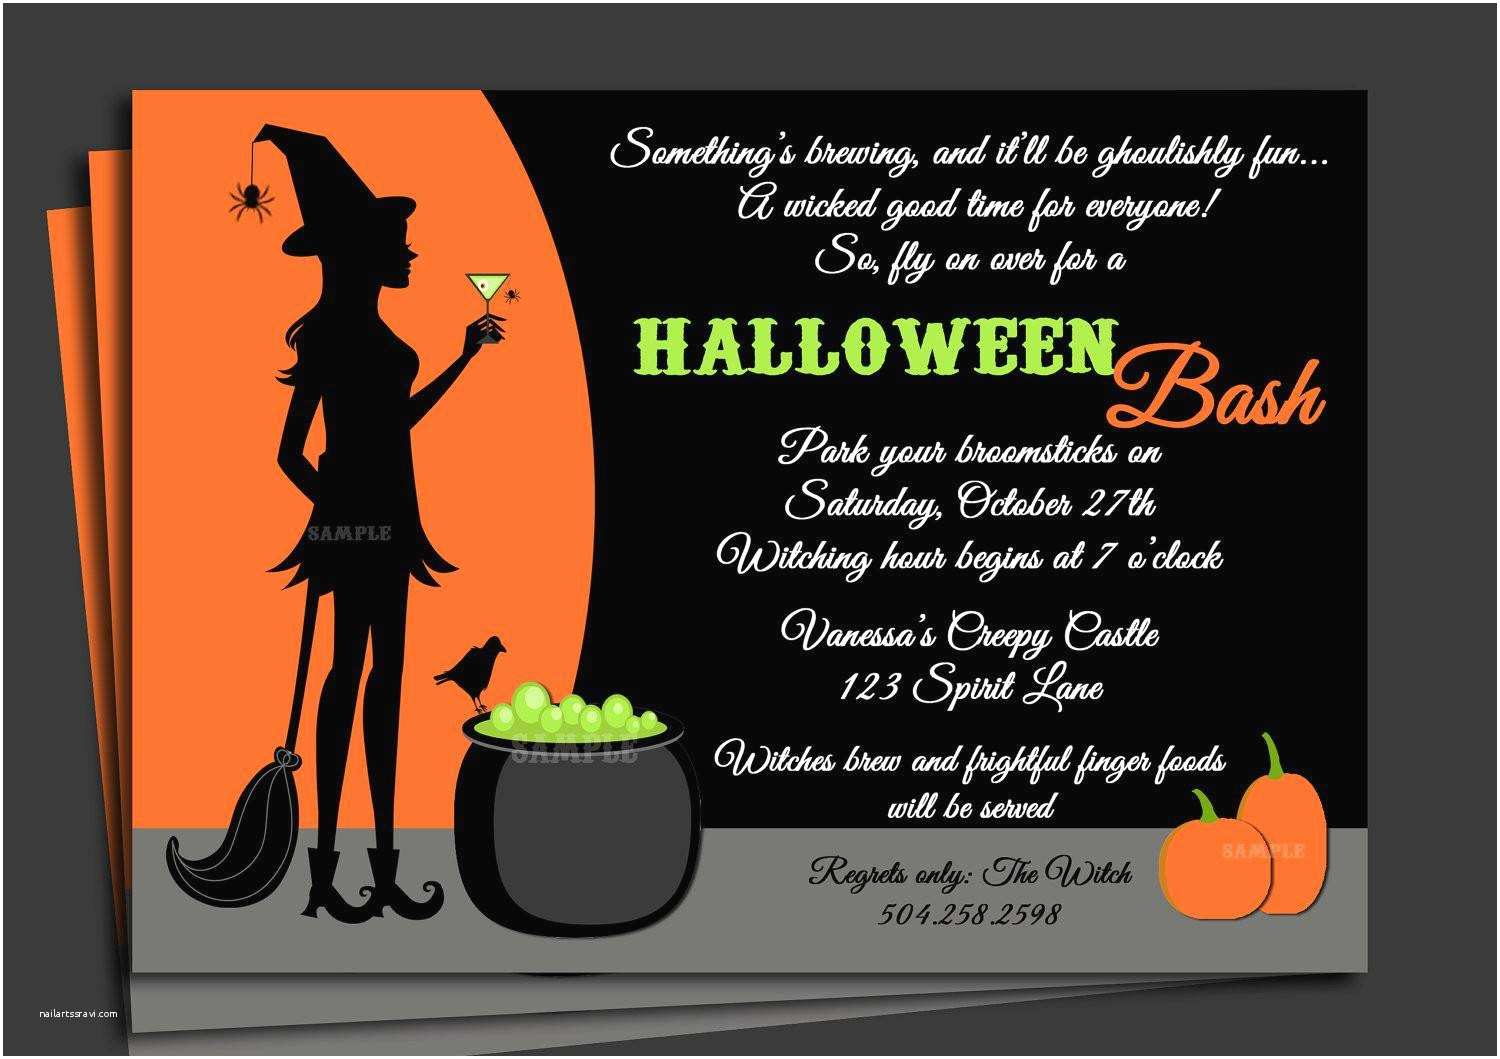 Costume Party Invitation Wording Halloween Party Invitation Ideas